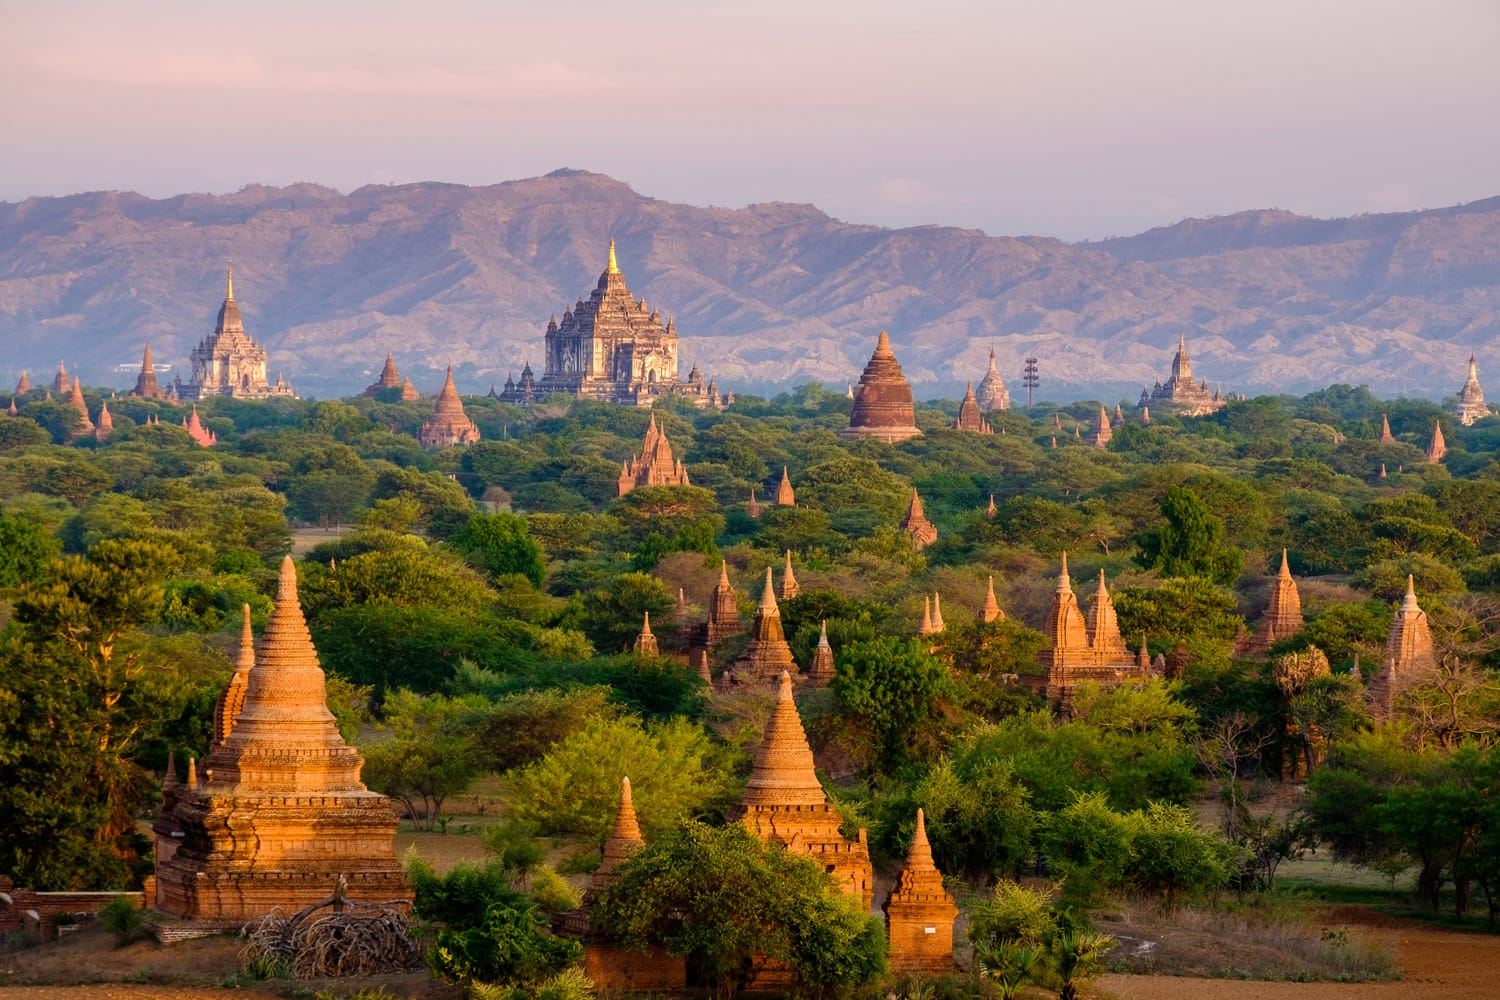 Sunrise landscape view with silhouettes of old temples, Bagan, Myanmar (Burma)